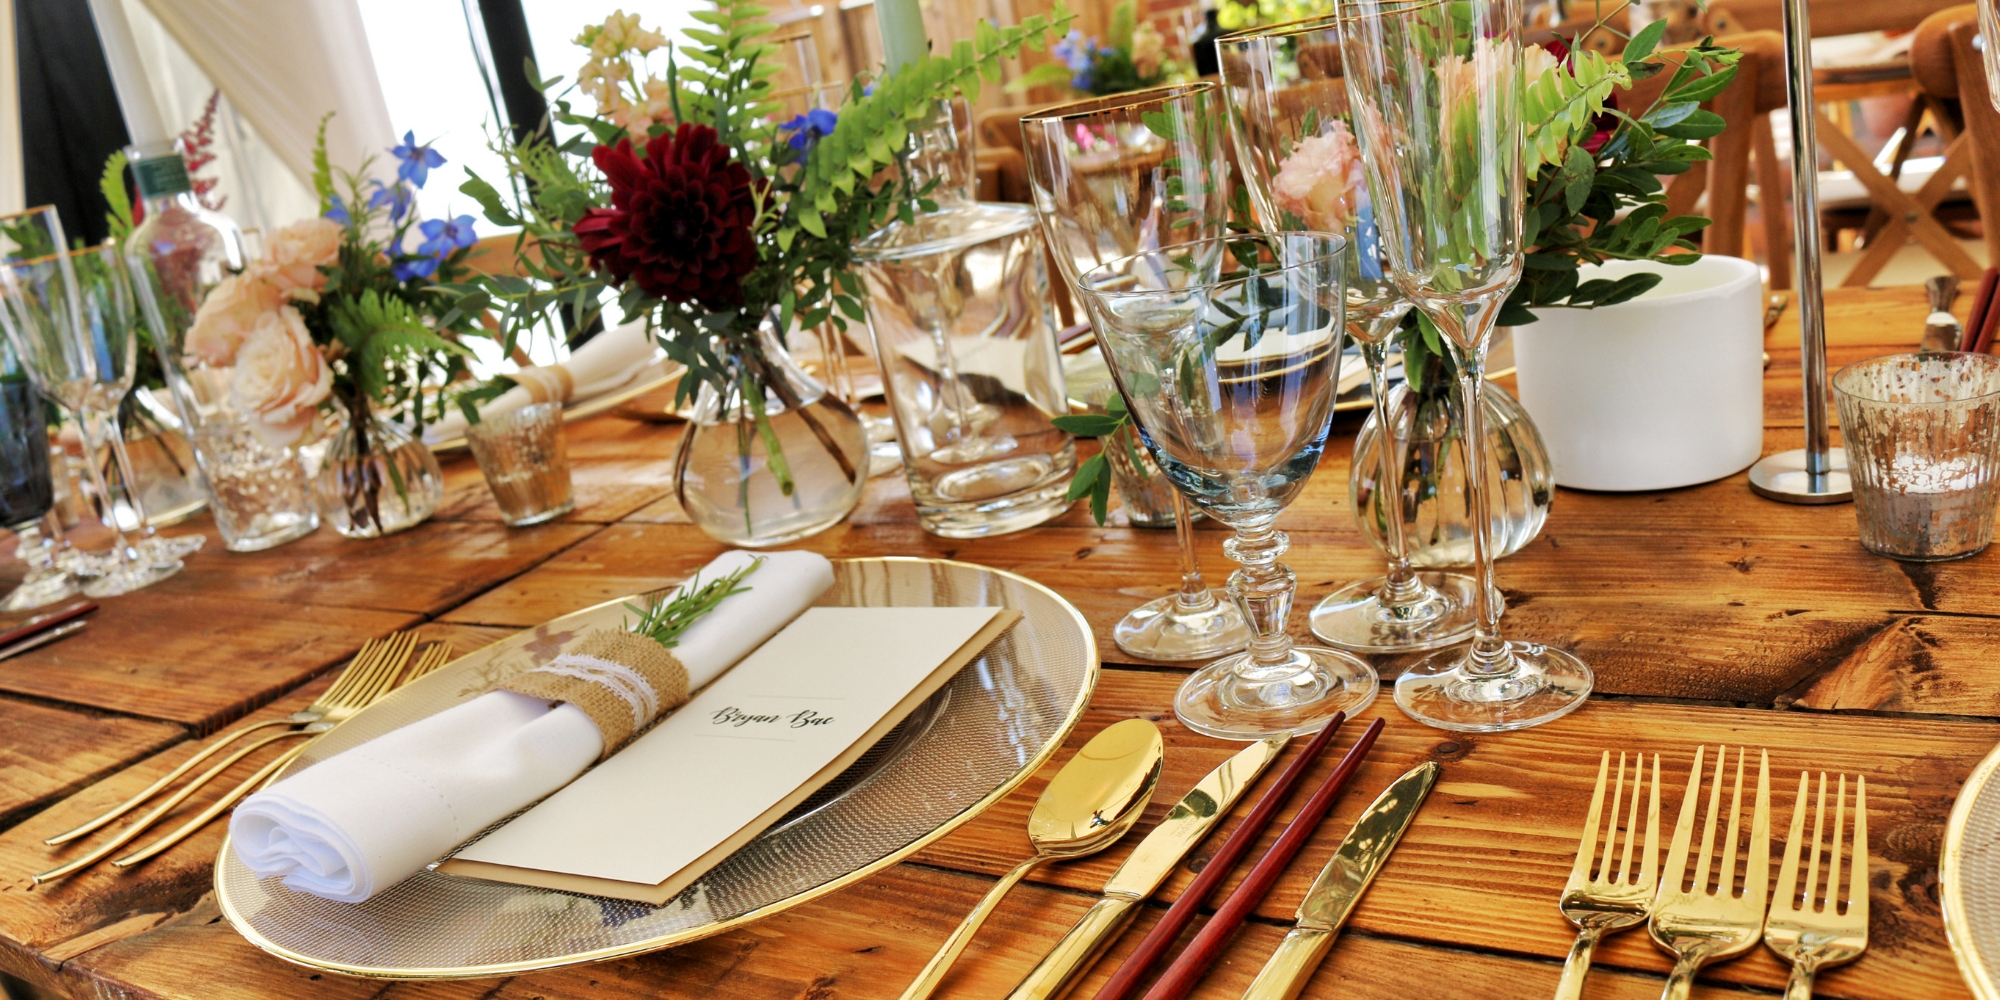 Creating Successful Events with Good Caterer and Events Manager Relationships